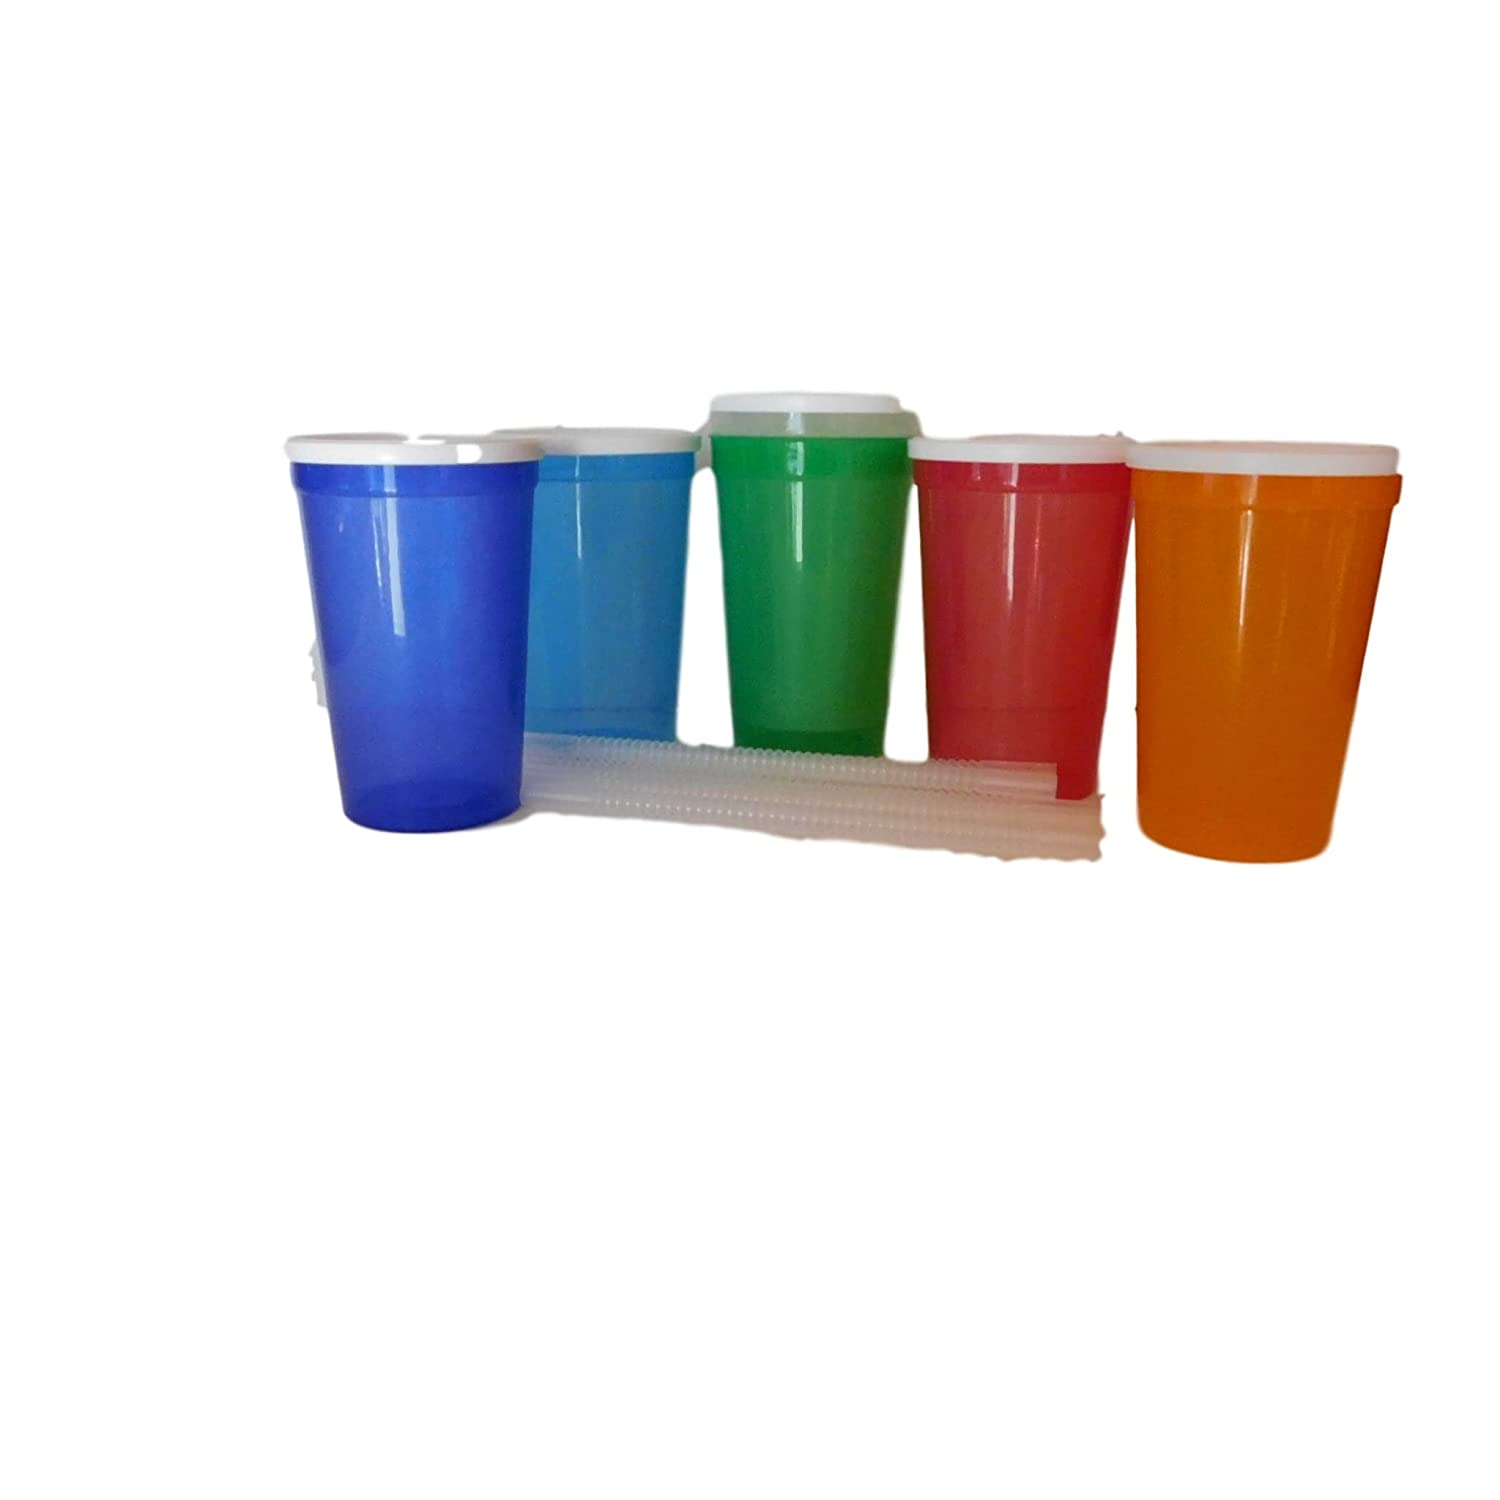 Talisman, Large 20 Ounce Plastic Drinking Glasses, Lids and Straws, 14 Pack, Mix Translucent Colors TOGG